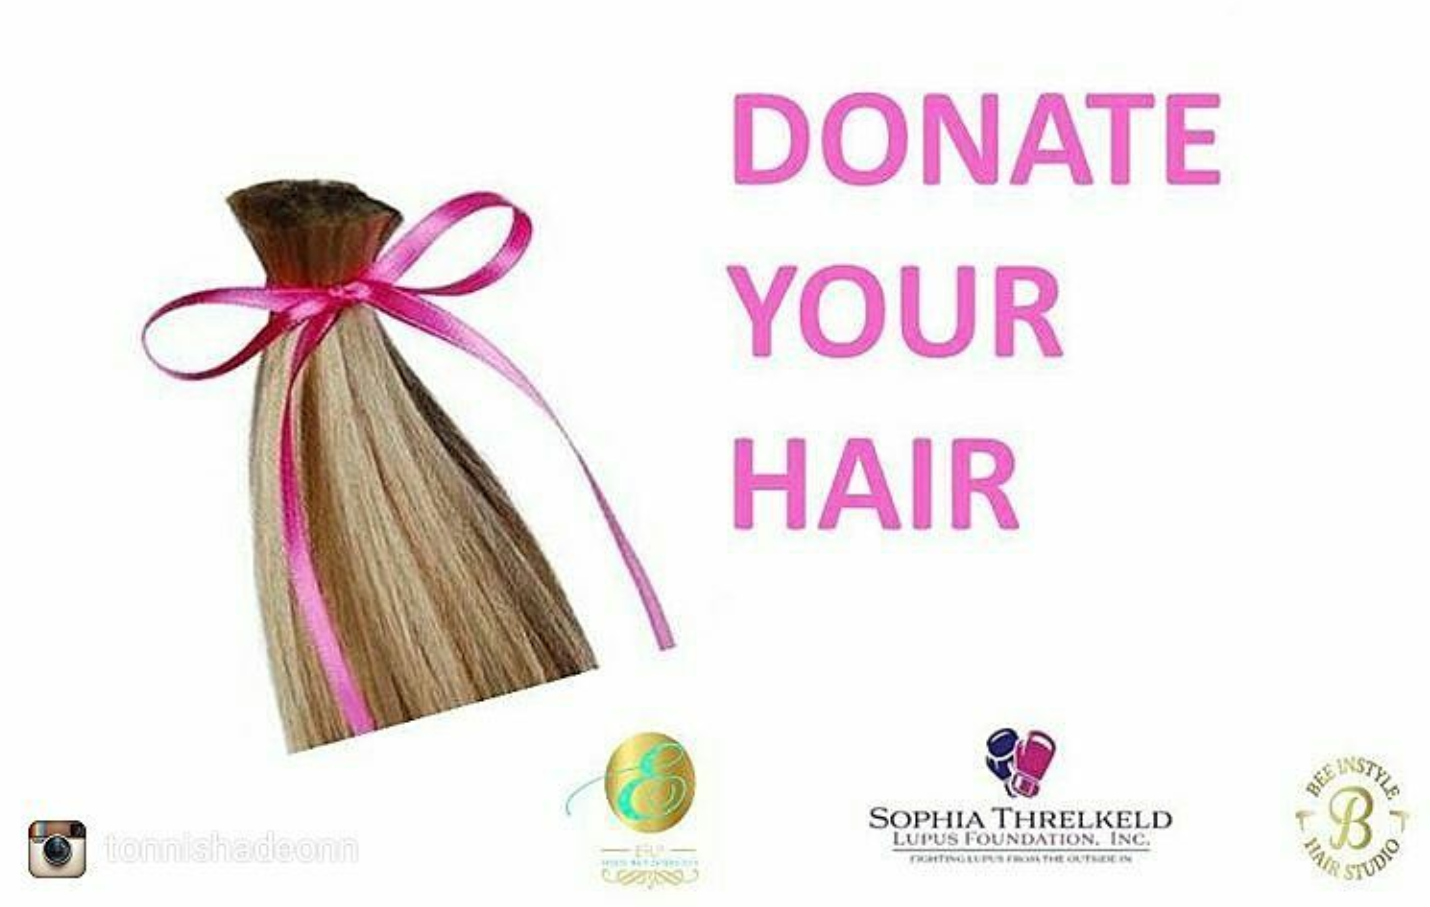 To make human hair donations  please call 713.998.7174 or mail hair donations to Custom Wig Express P. O. Box 20289 Houston, TX 77225